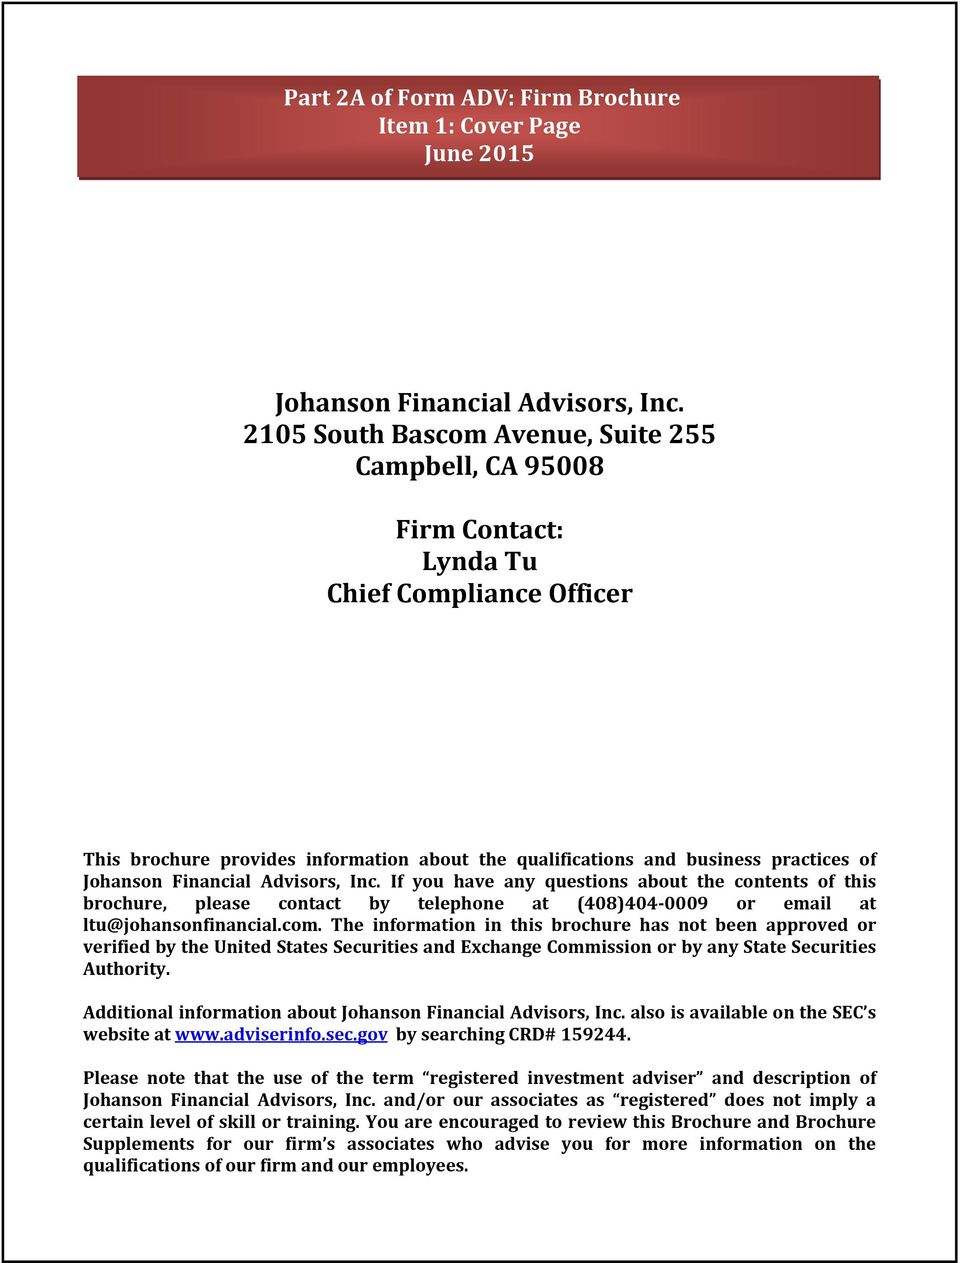 Financial Advisors, Inc. If you have any questions about the contents of this brochure, please contact by telephone at (408)404 0009 or email at ltu@johansonfinancial.com.